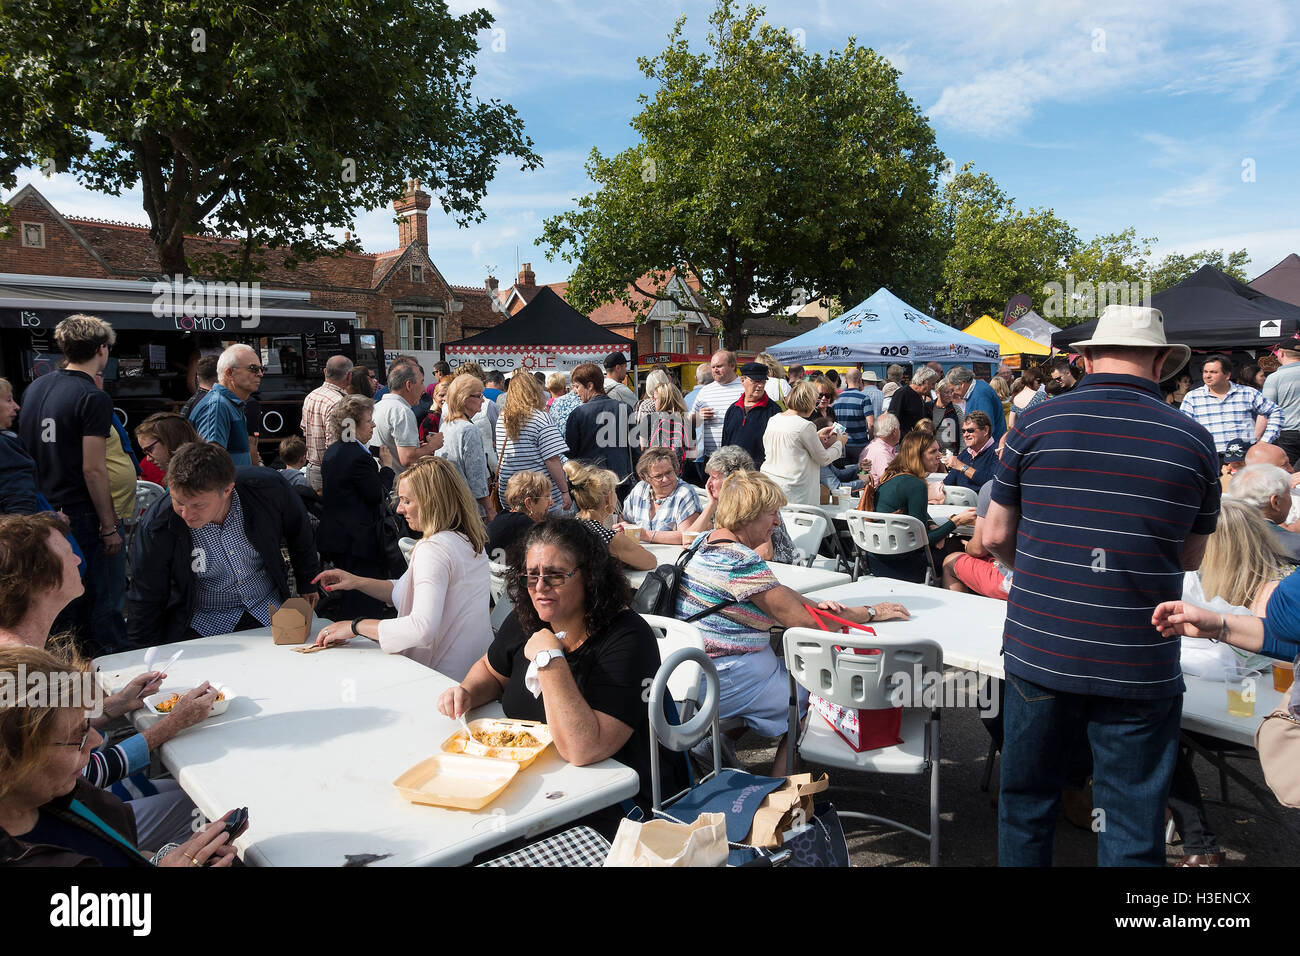 Colourful Stalls Surrounded by People at the Thame Festival of Food Oxfordshire England United Kingdom UK - Stock Image